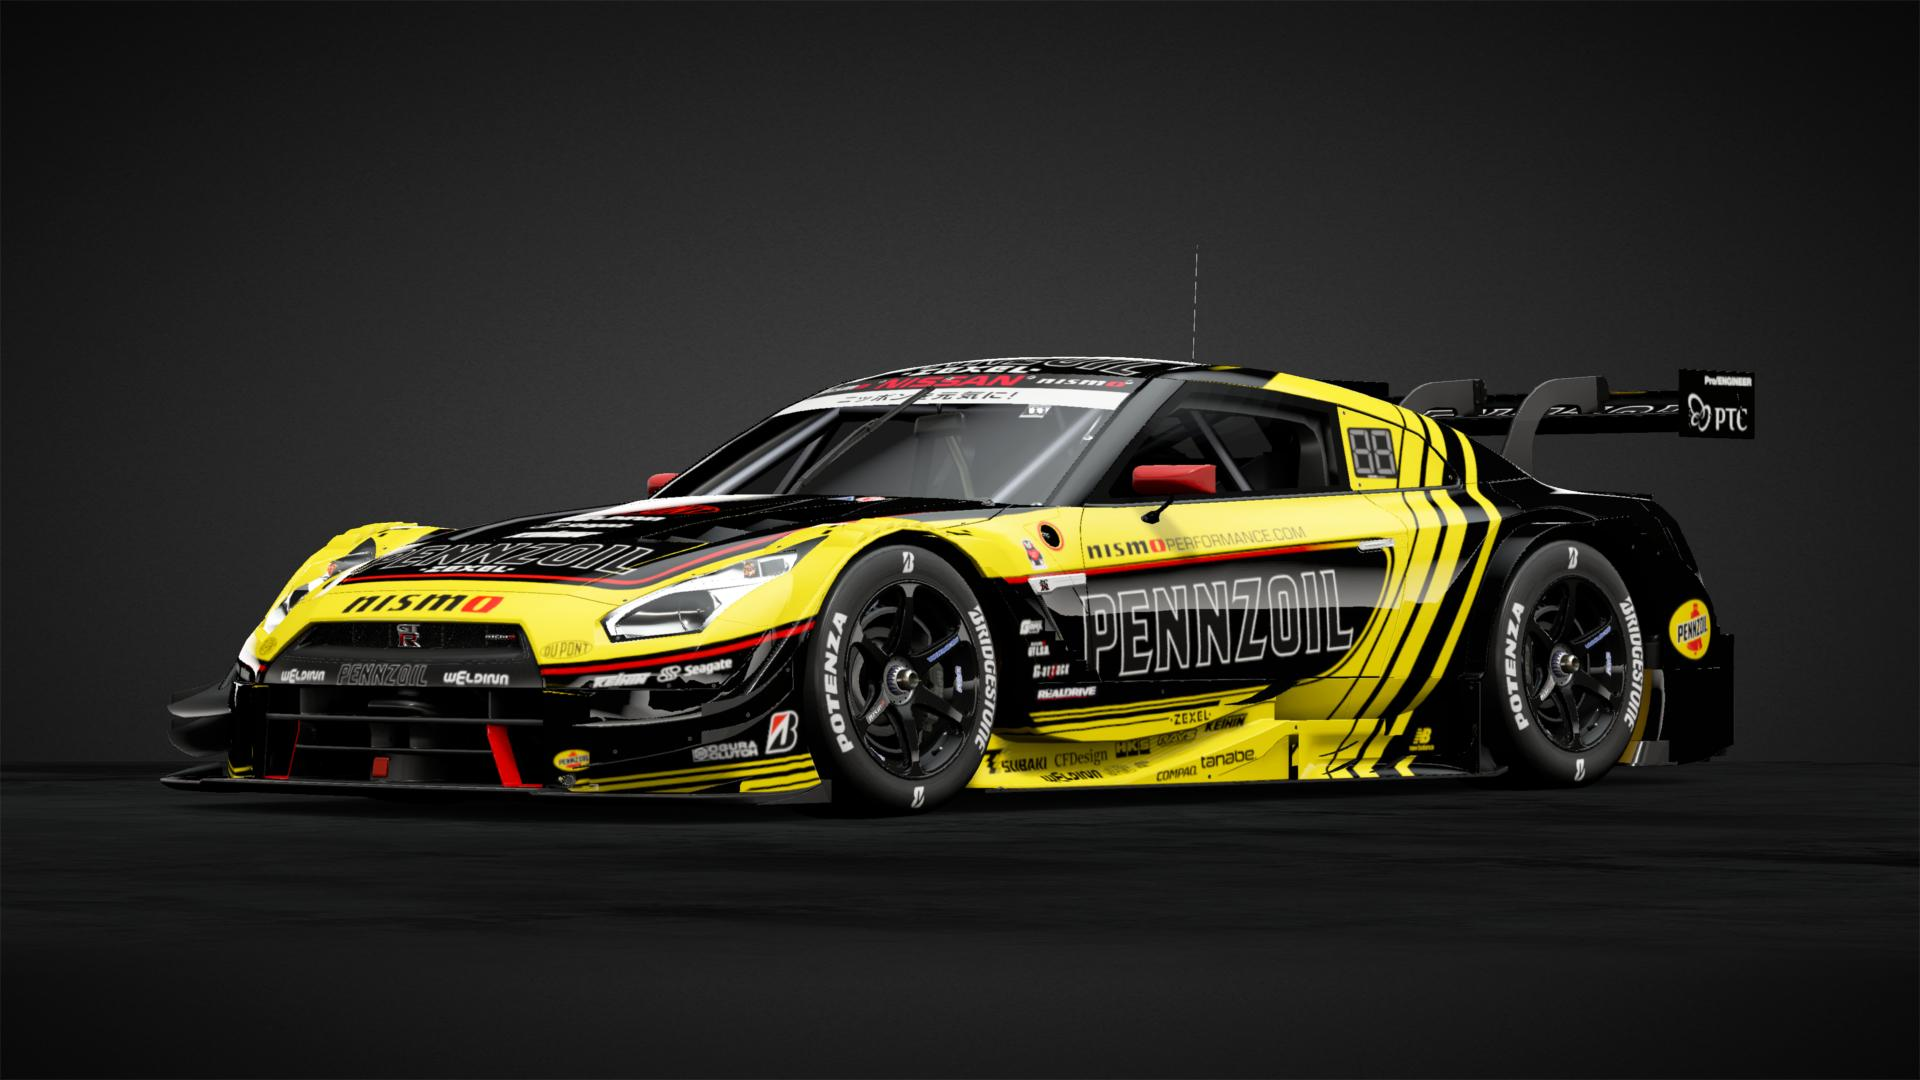 Pennzoil Nismo Car Livery by Baco0974 munity